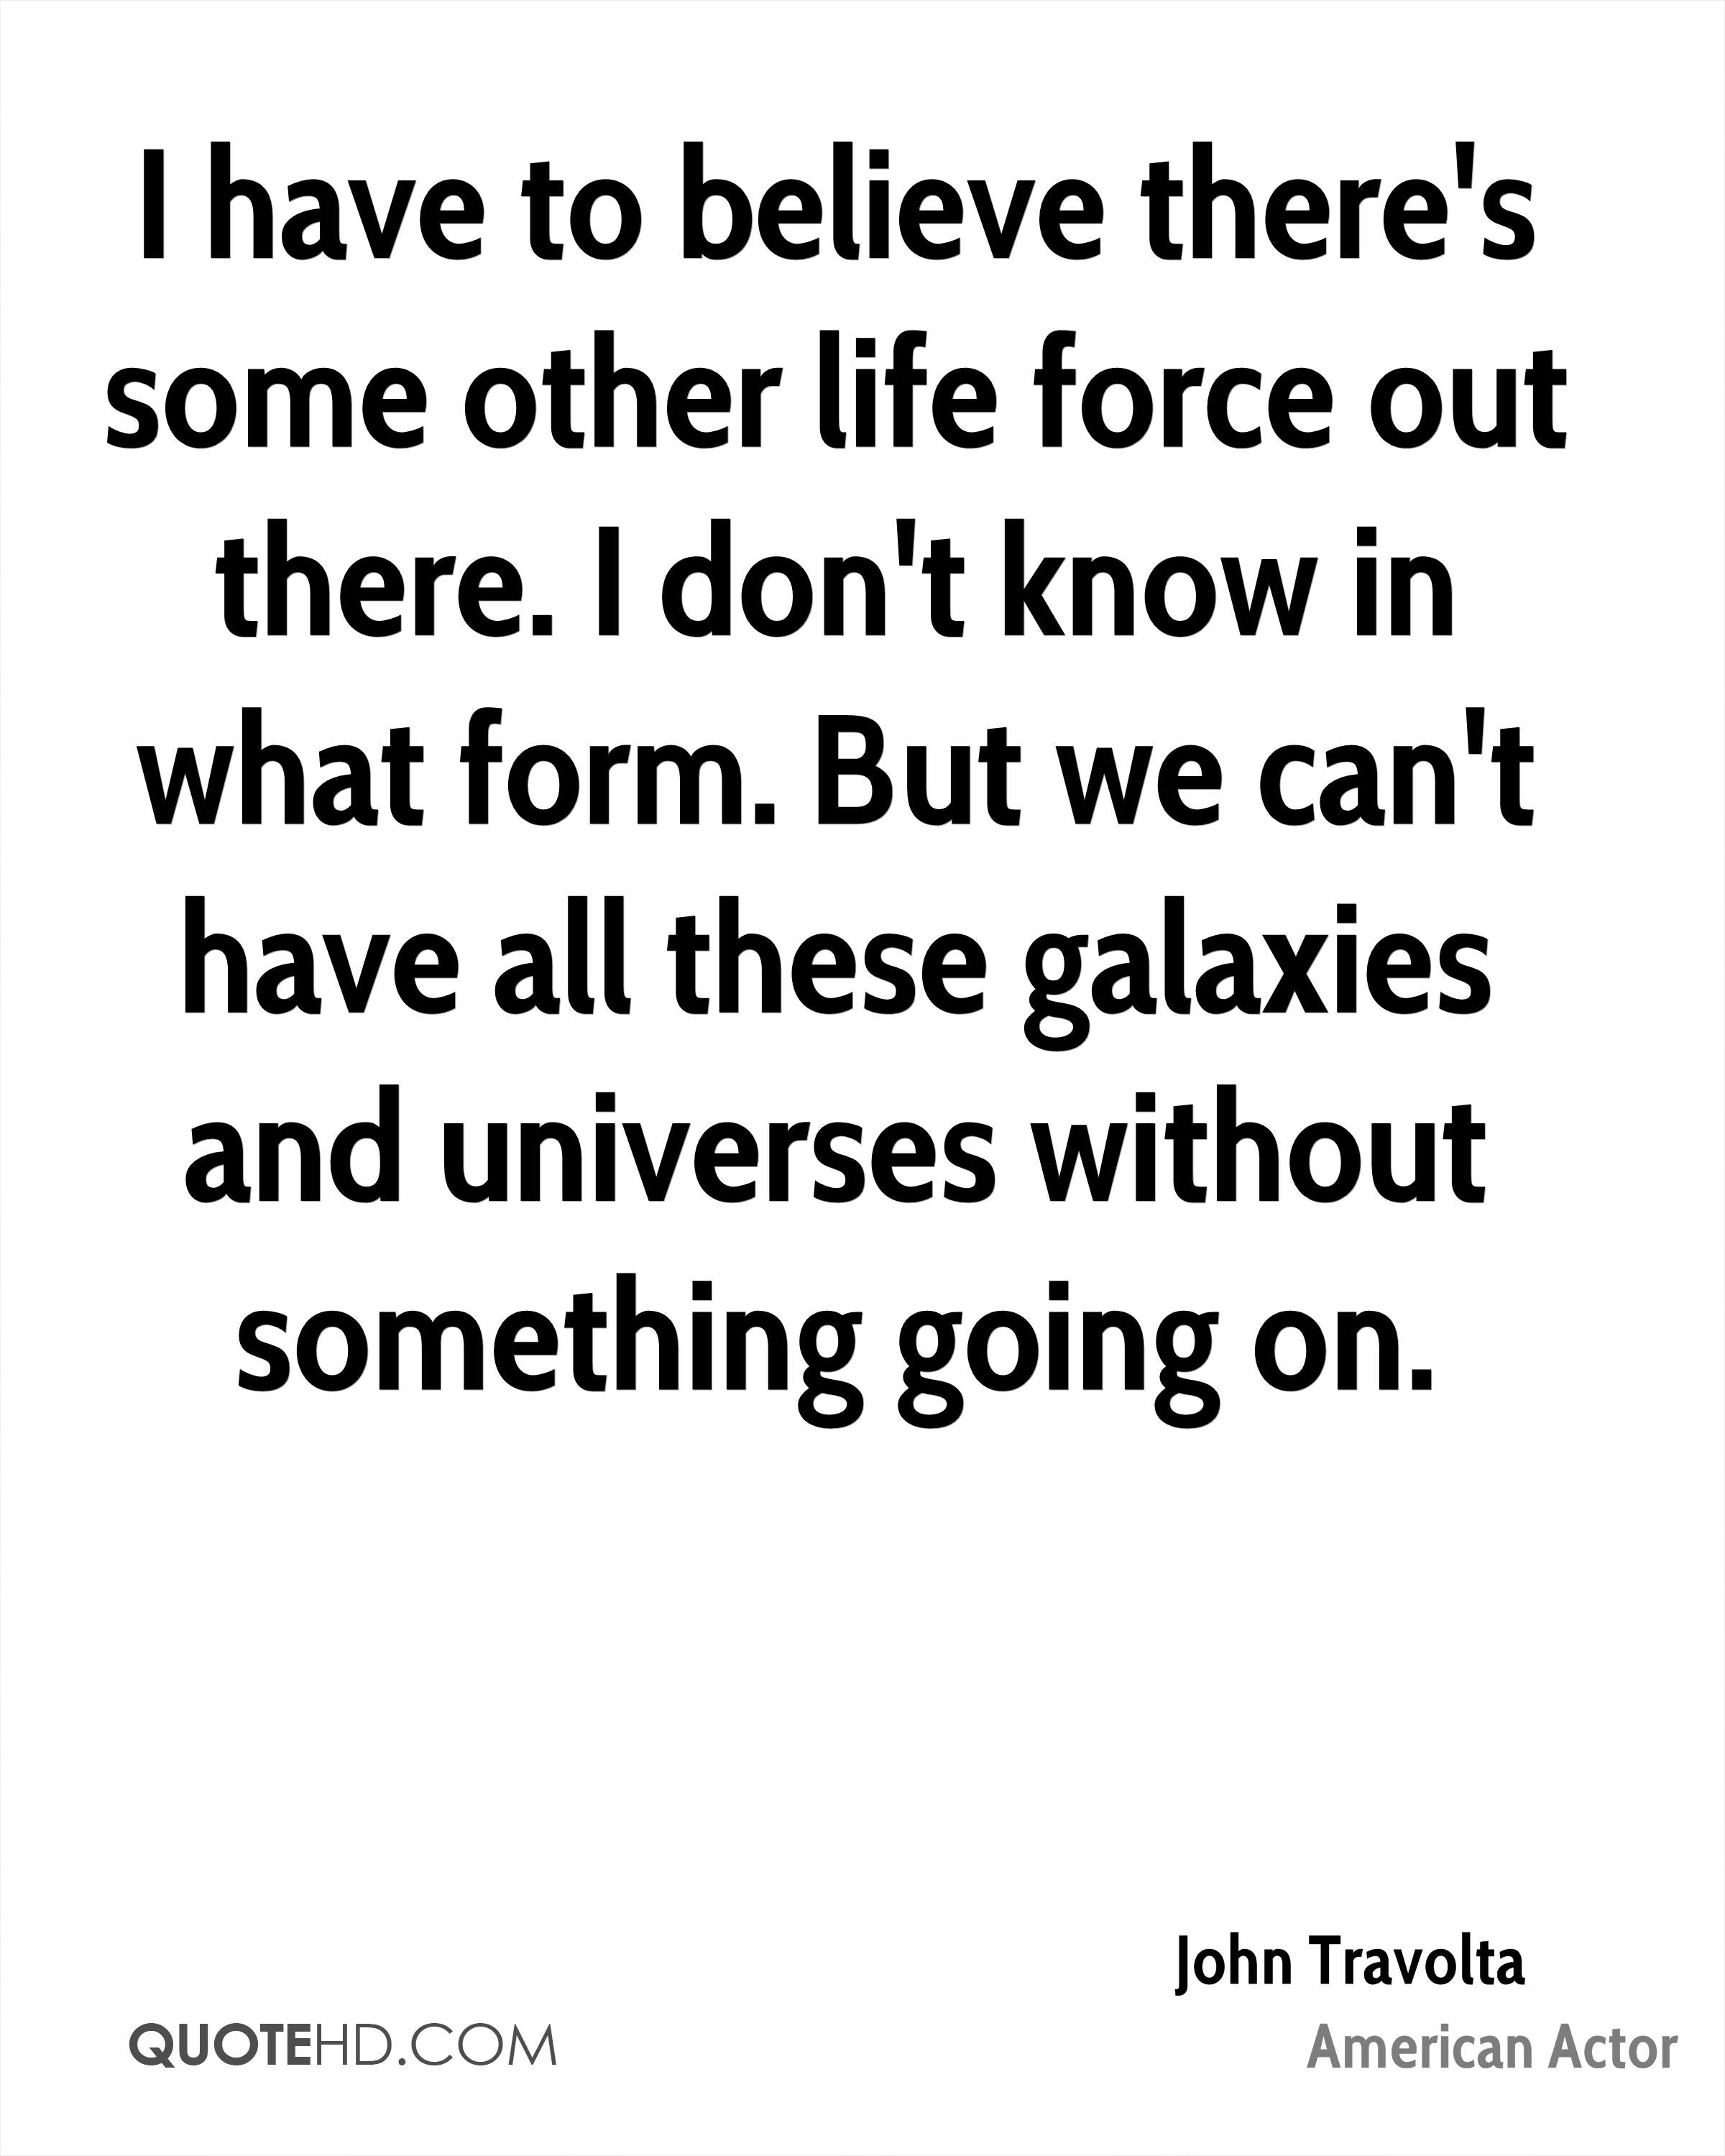 I have to believe there's some other life force out there. I don't know in what form. But we can't have all these galaxies and universes without something going on.